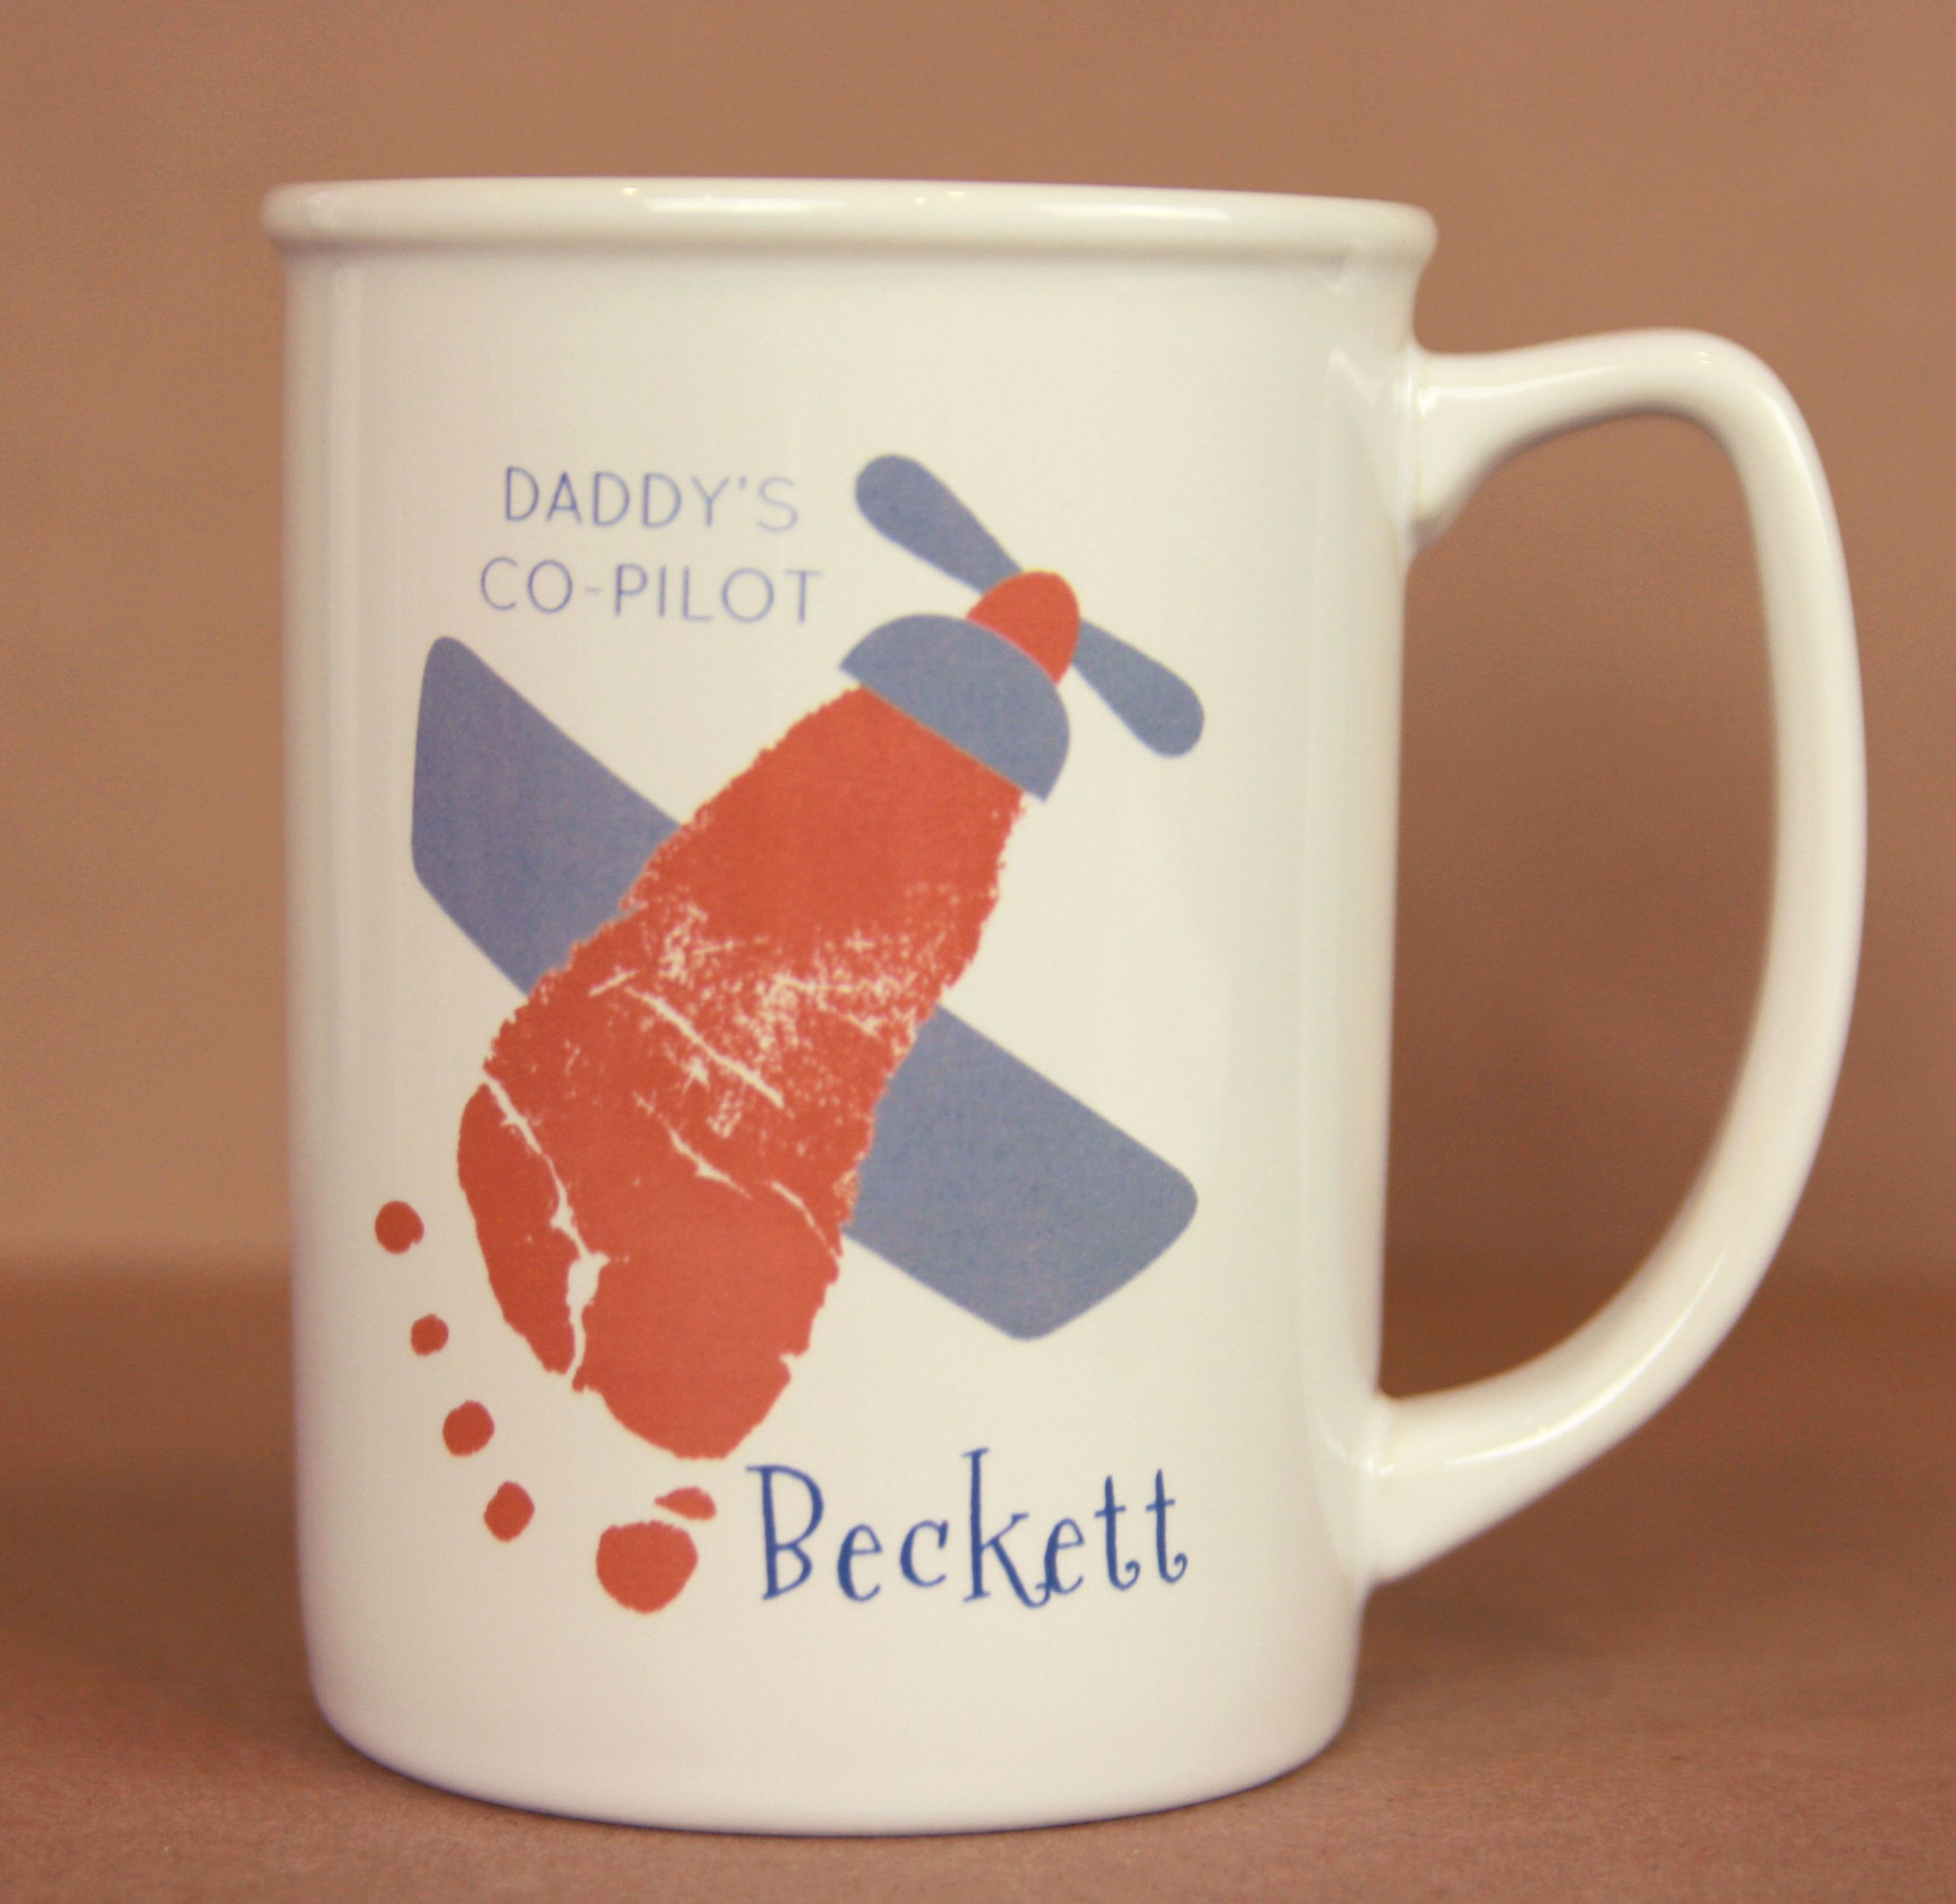 Perfect gift for any pilot or plane enthusiast! A keepsake ...